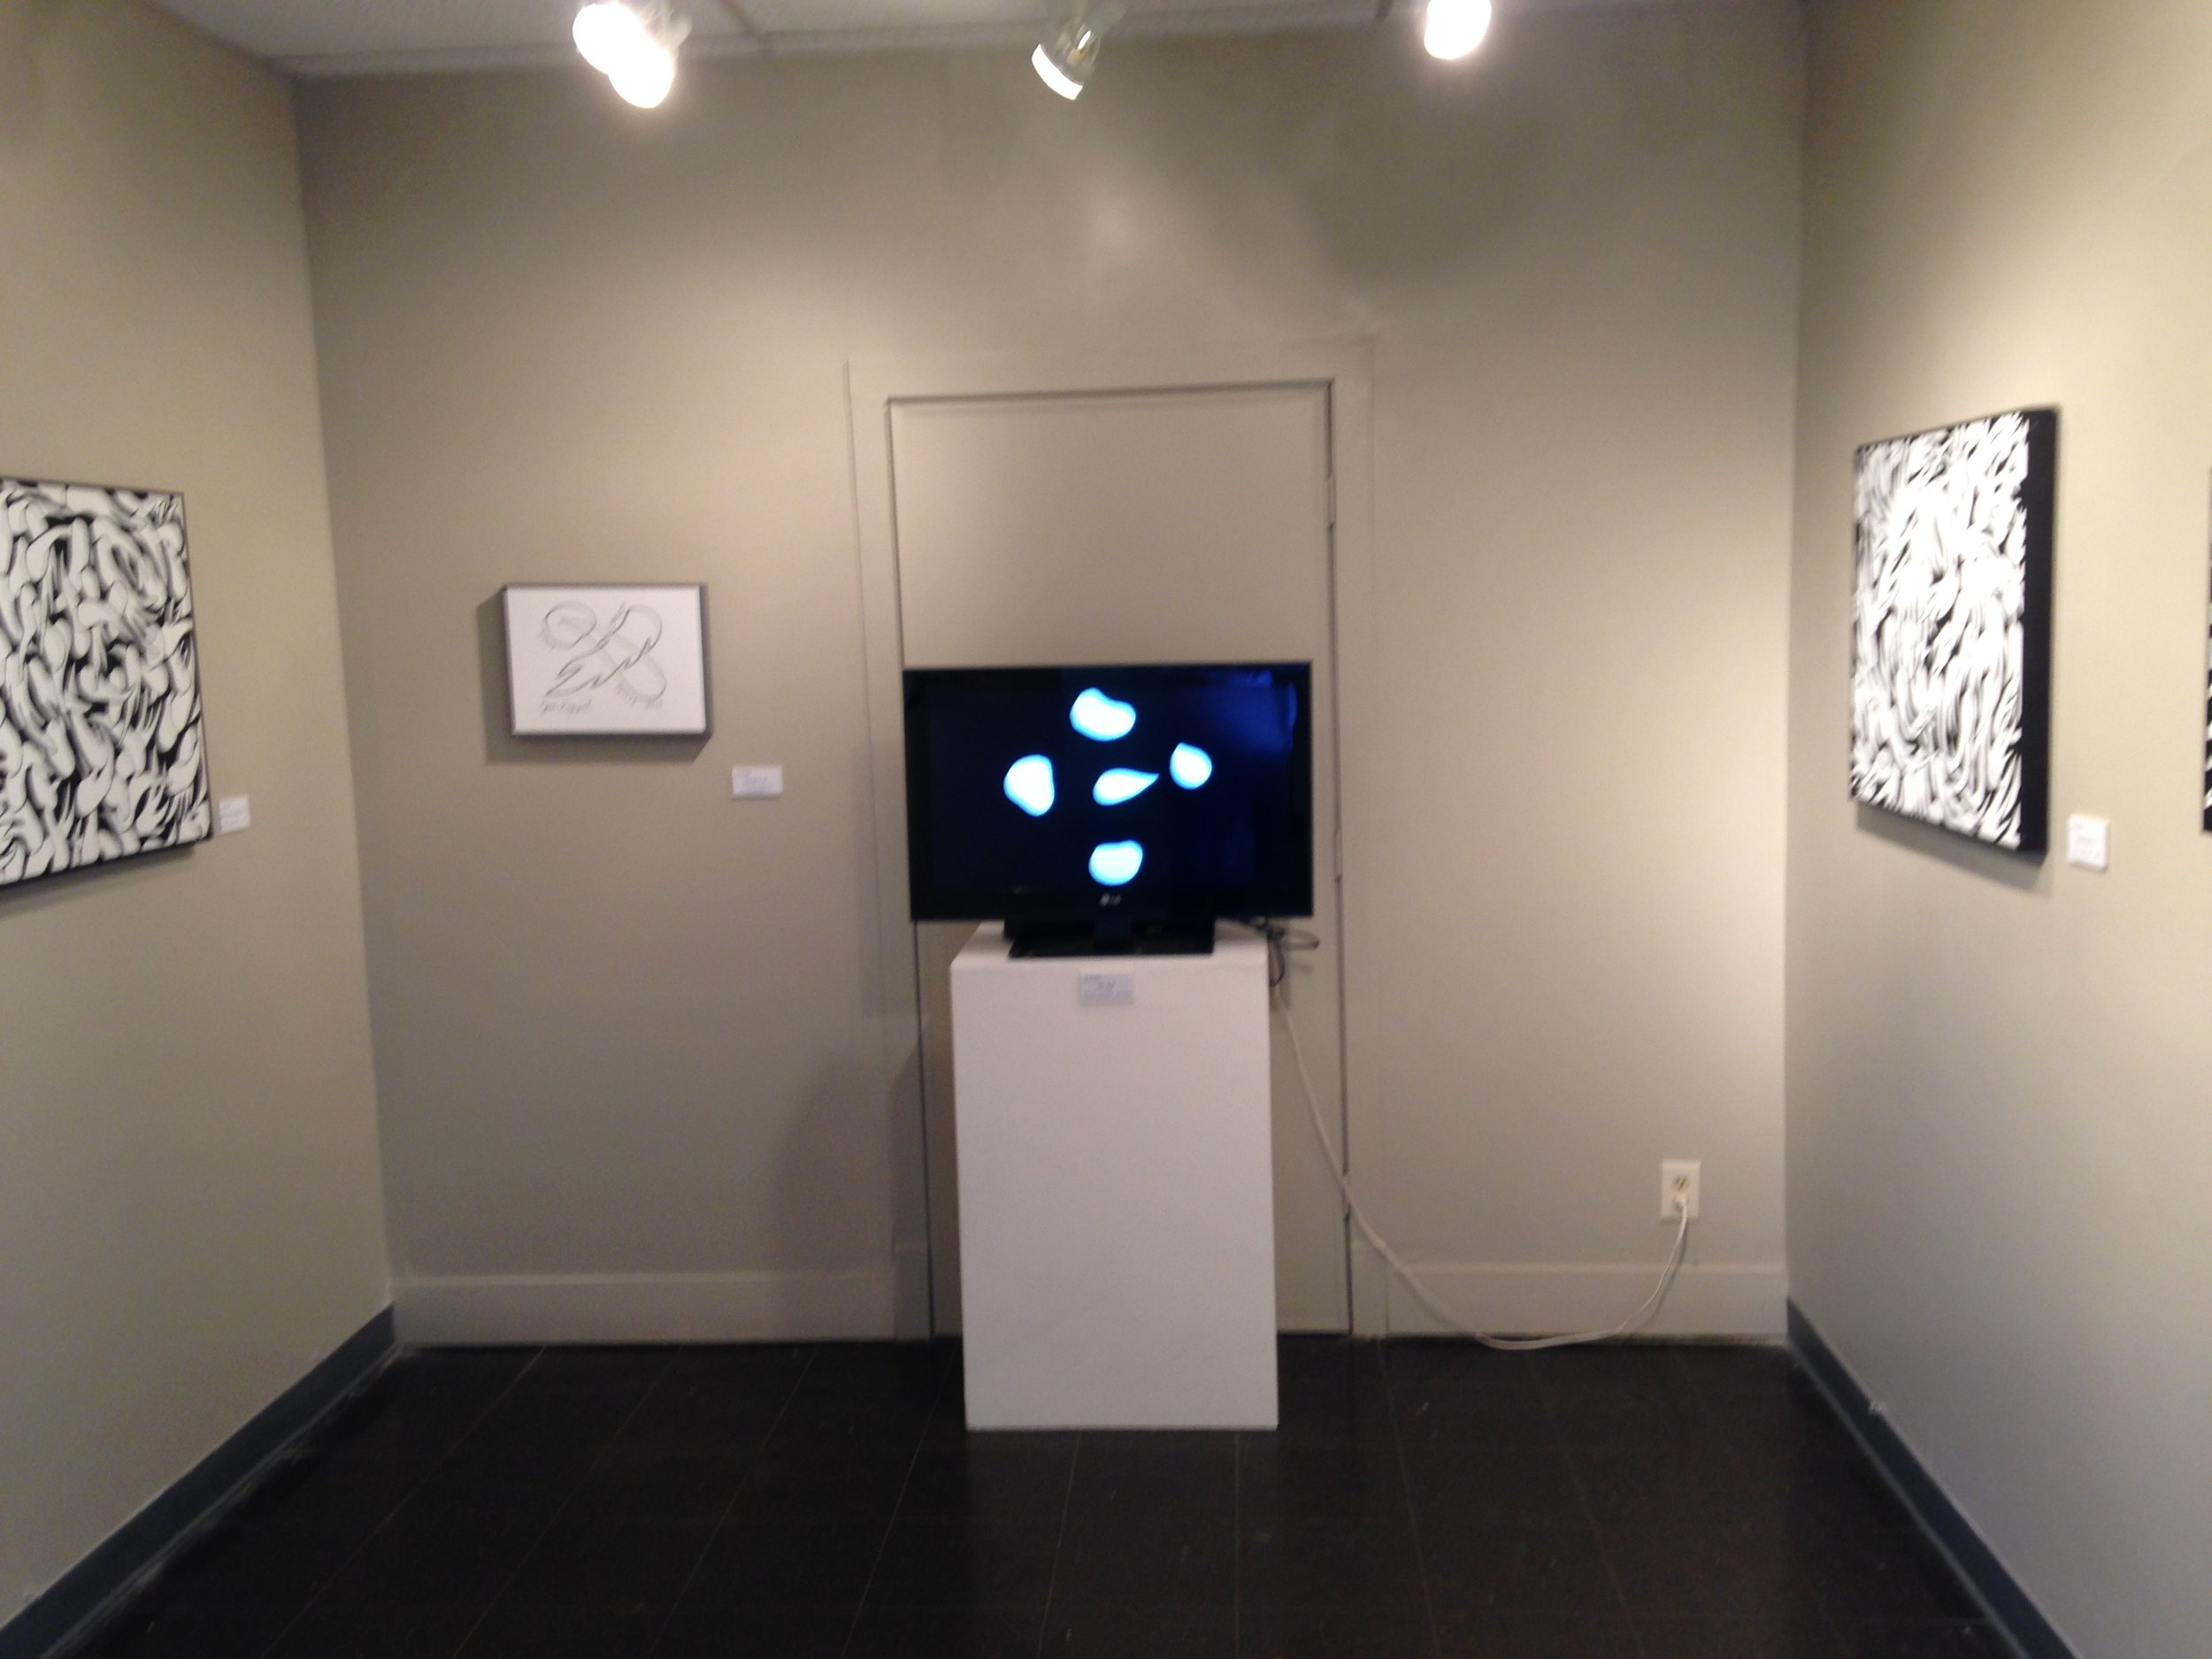 Conventional Exhibition of my Conventional Artwork